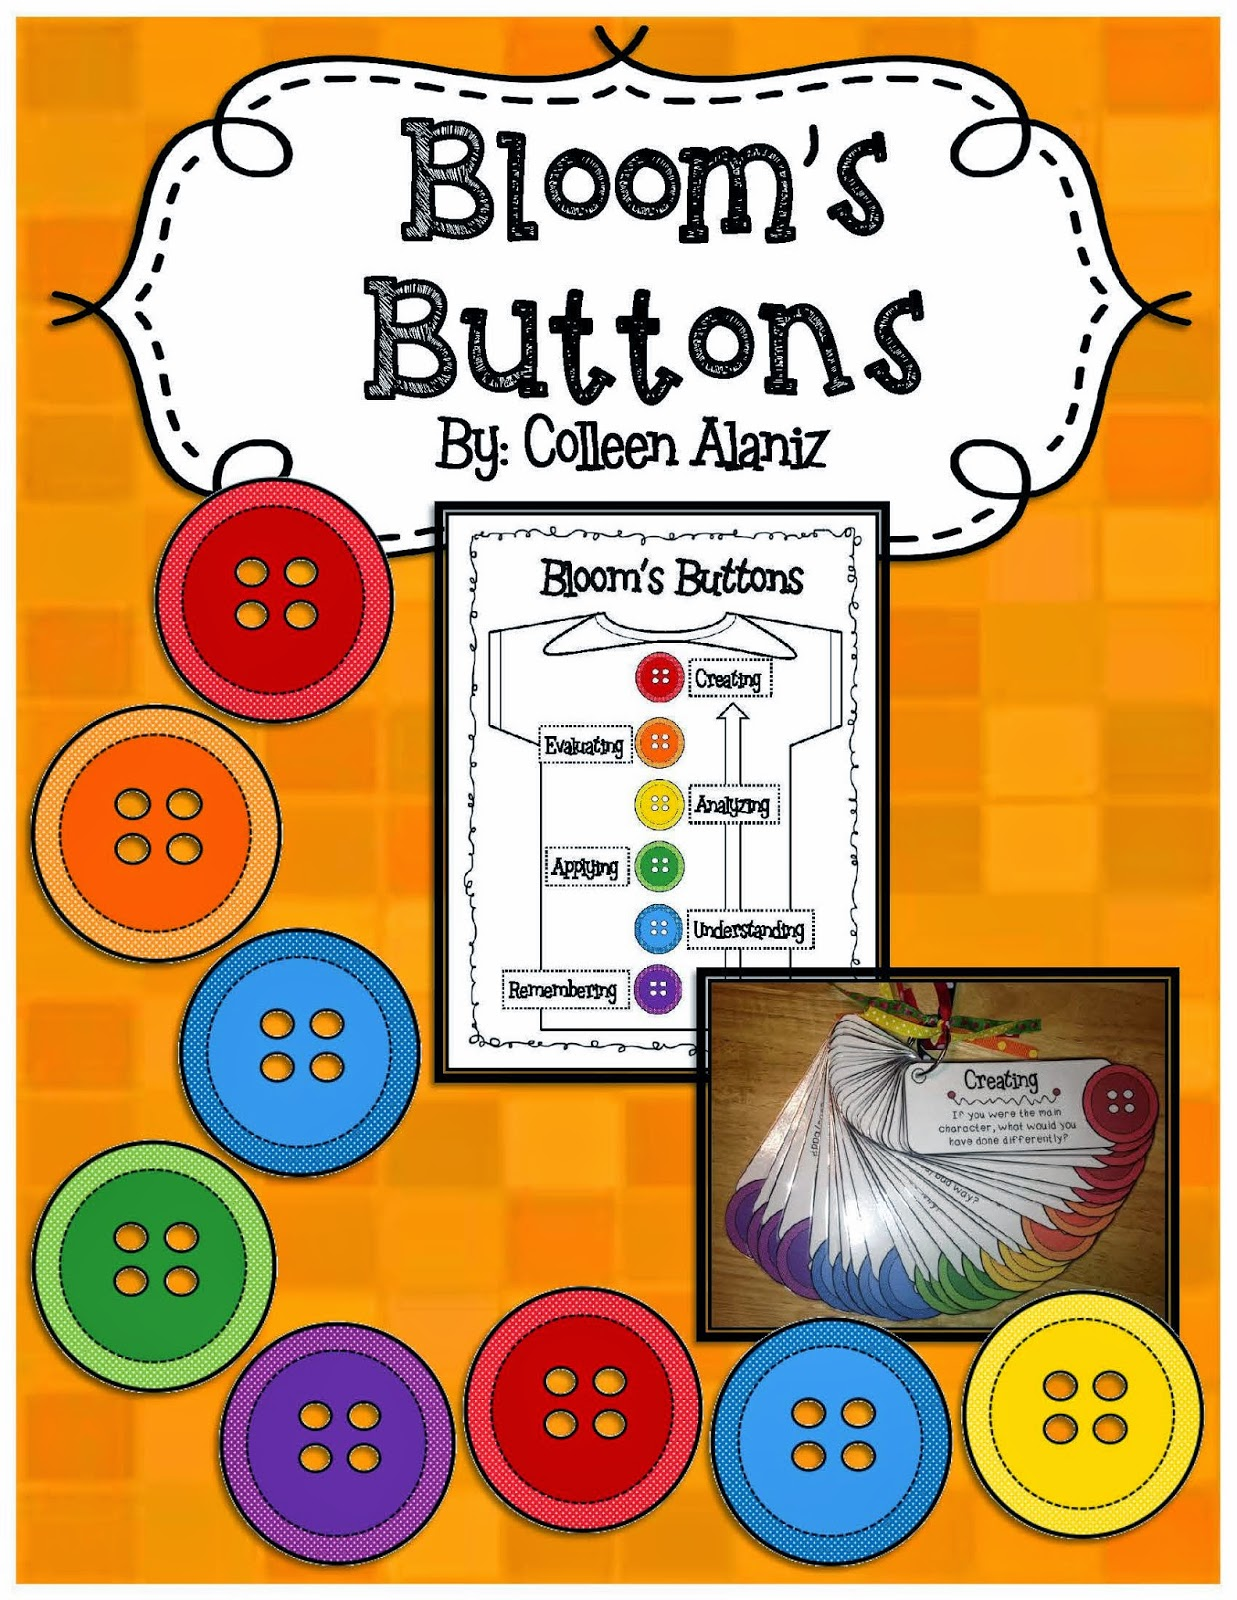 http://www.teacherspayteachers.com/Product/Blooms-Buttons-440161